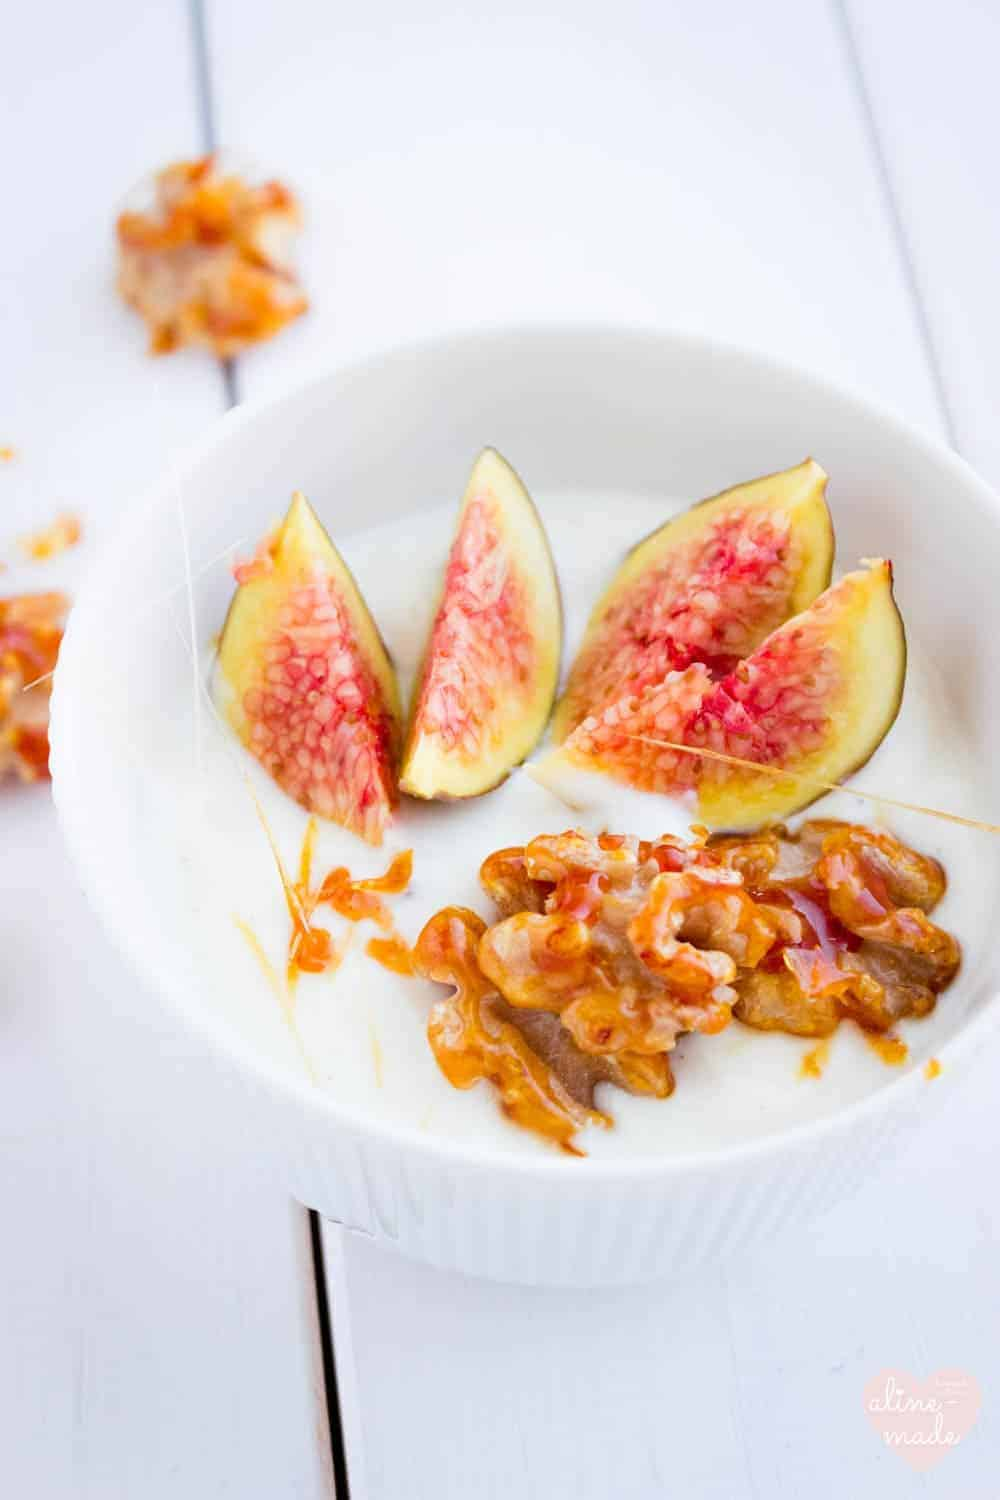 Yogurt in a bowl with figs and candied walnuts